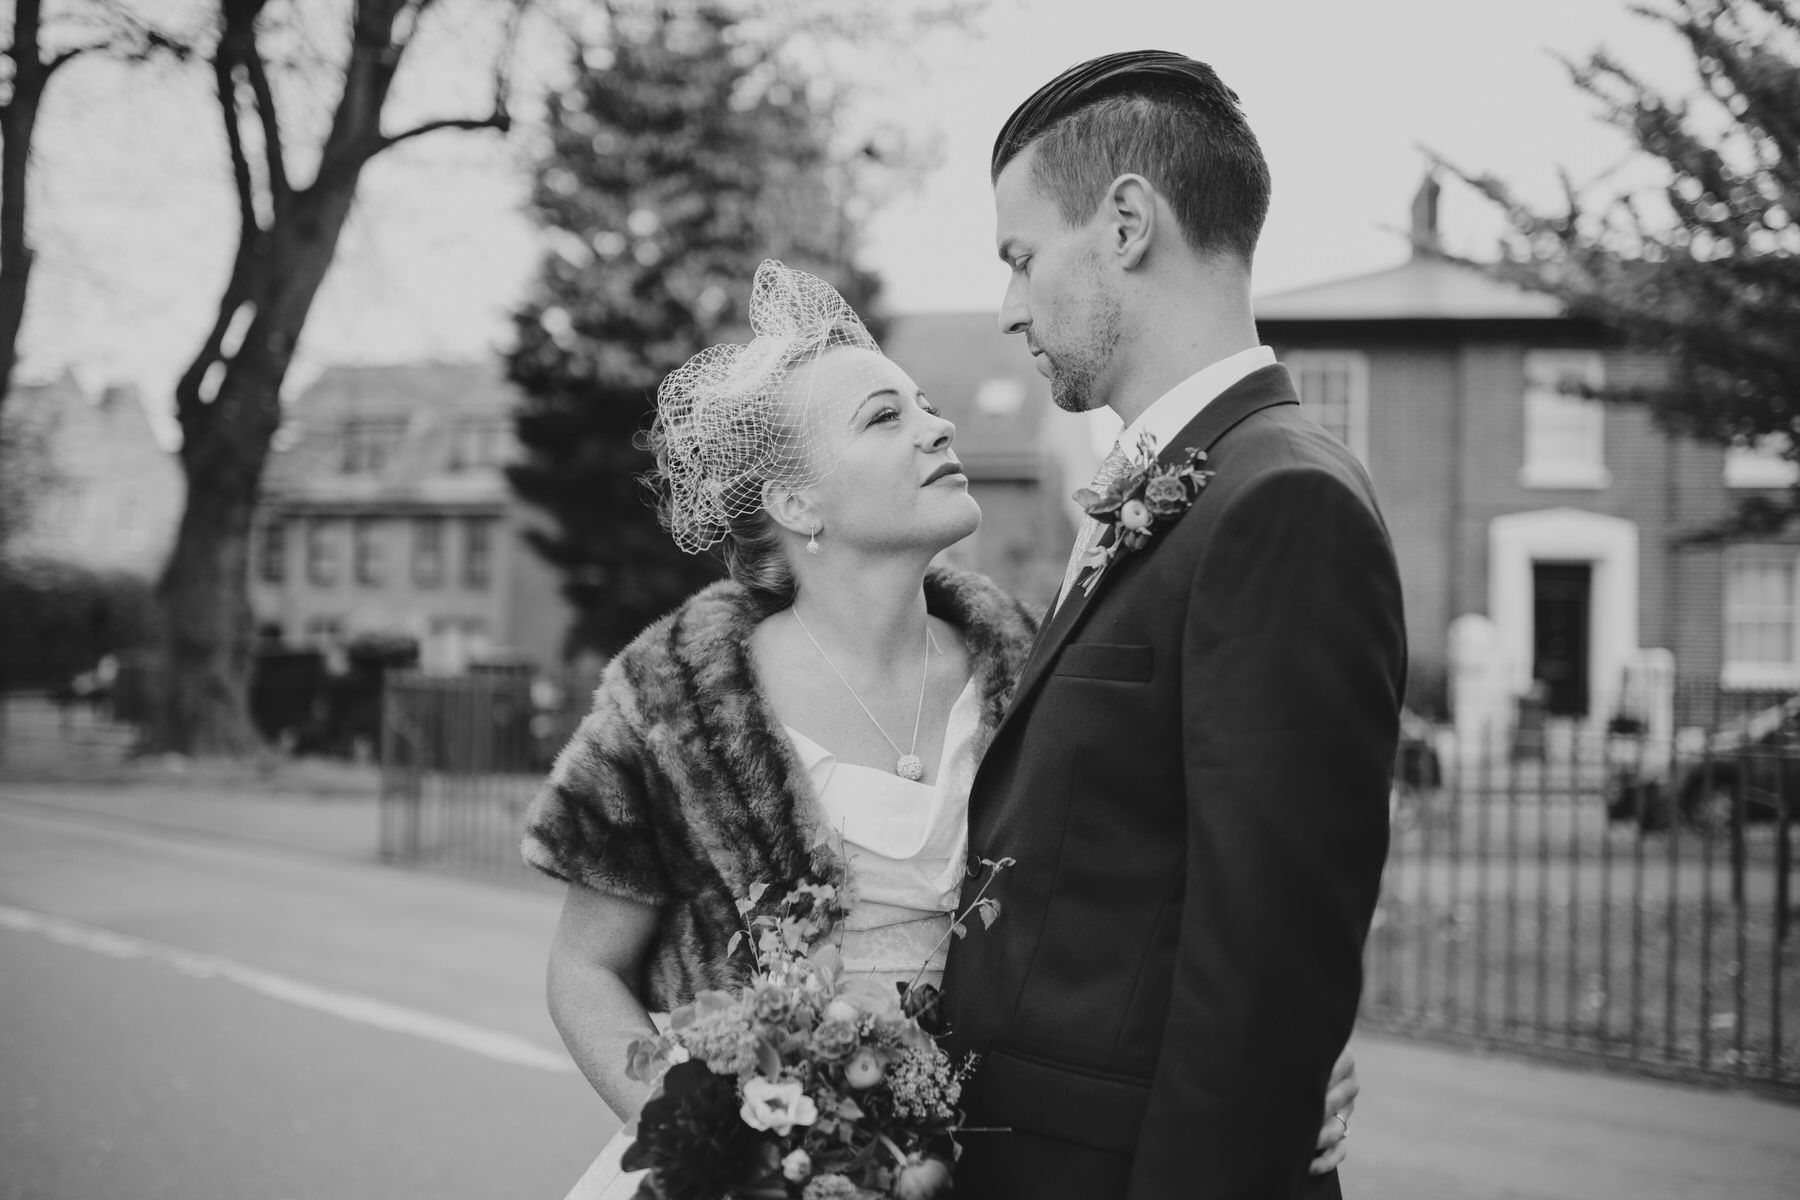 MS-Londesborough-Pub-wedding-Hackney-alternative-photographer-48-BW-wedding-photo-quirky-groom-bride-London-Fields-reportage.jpg